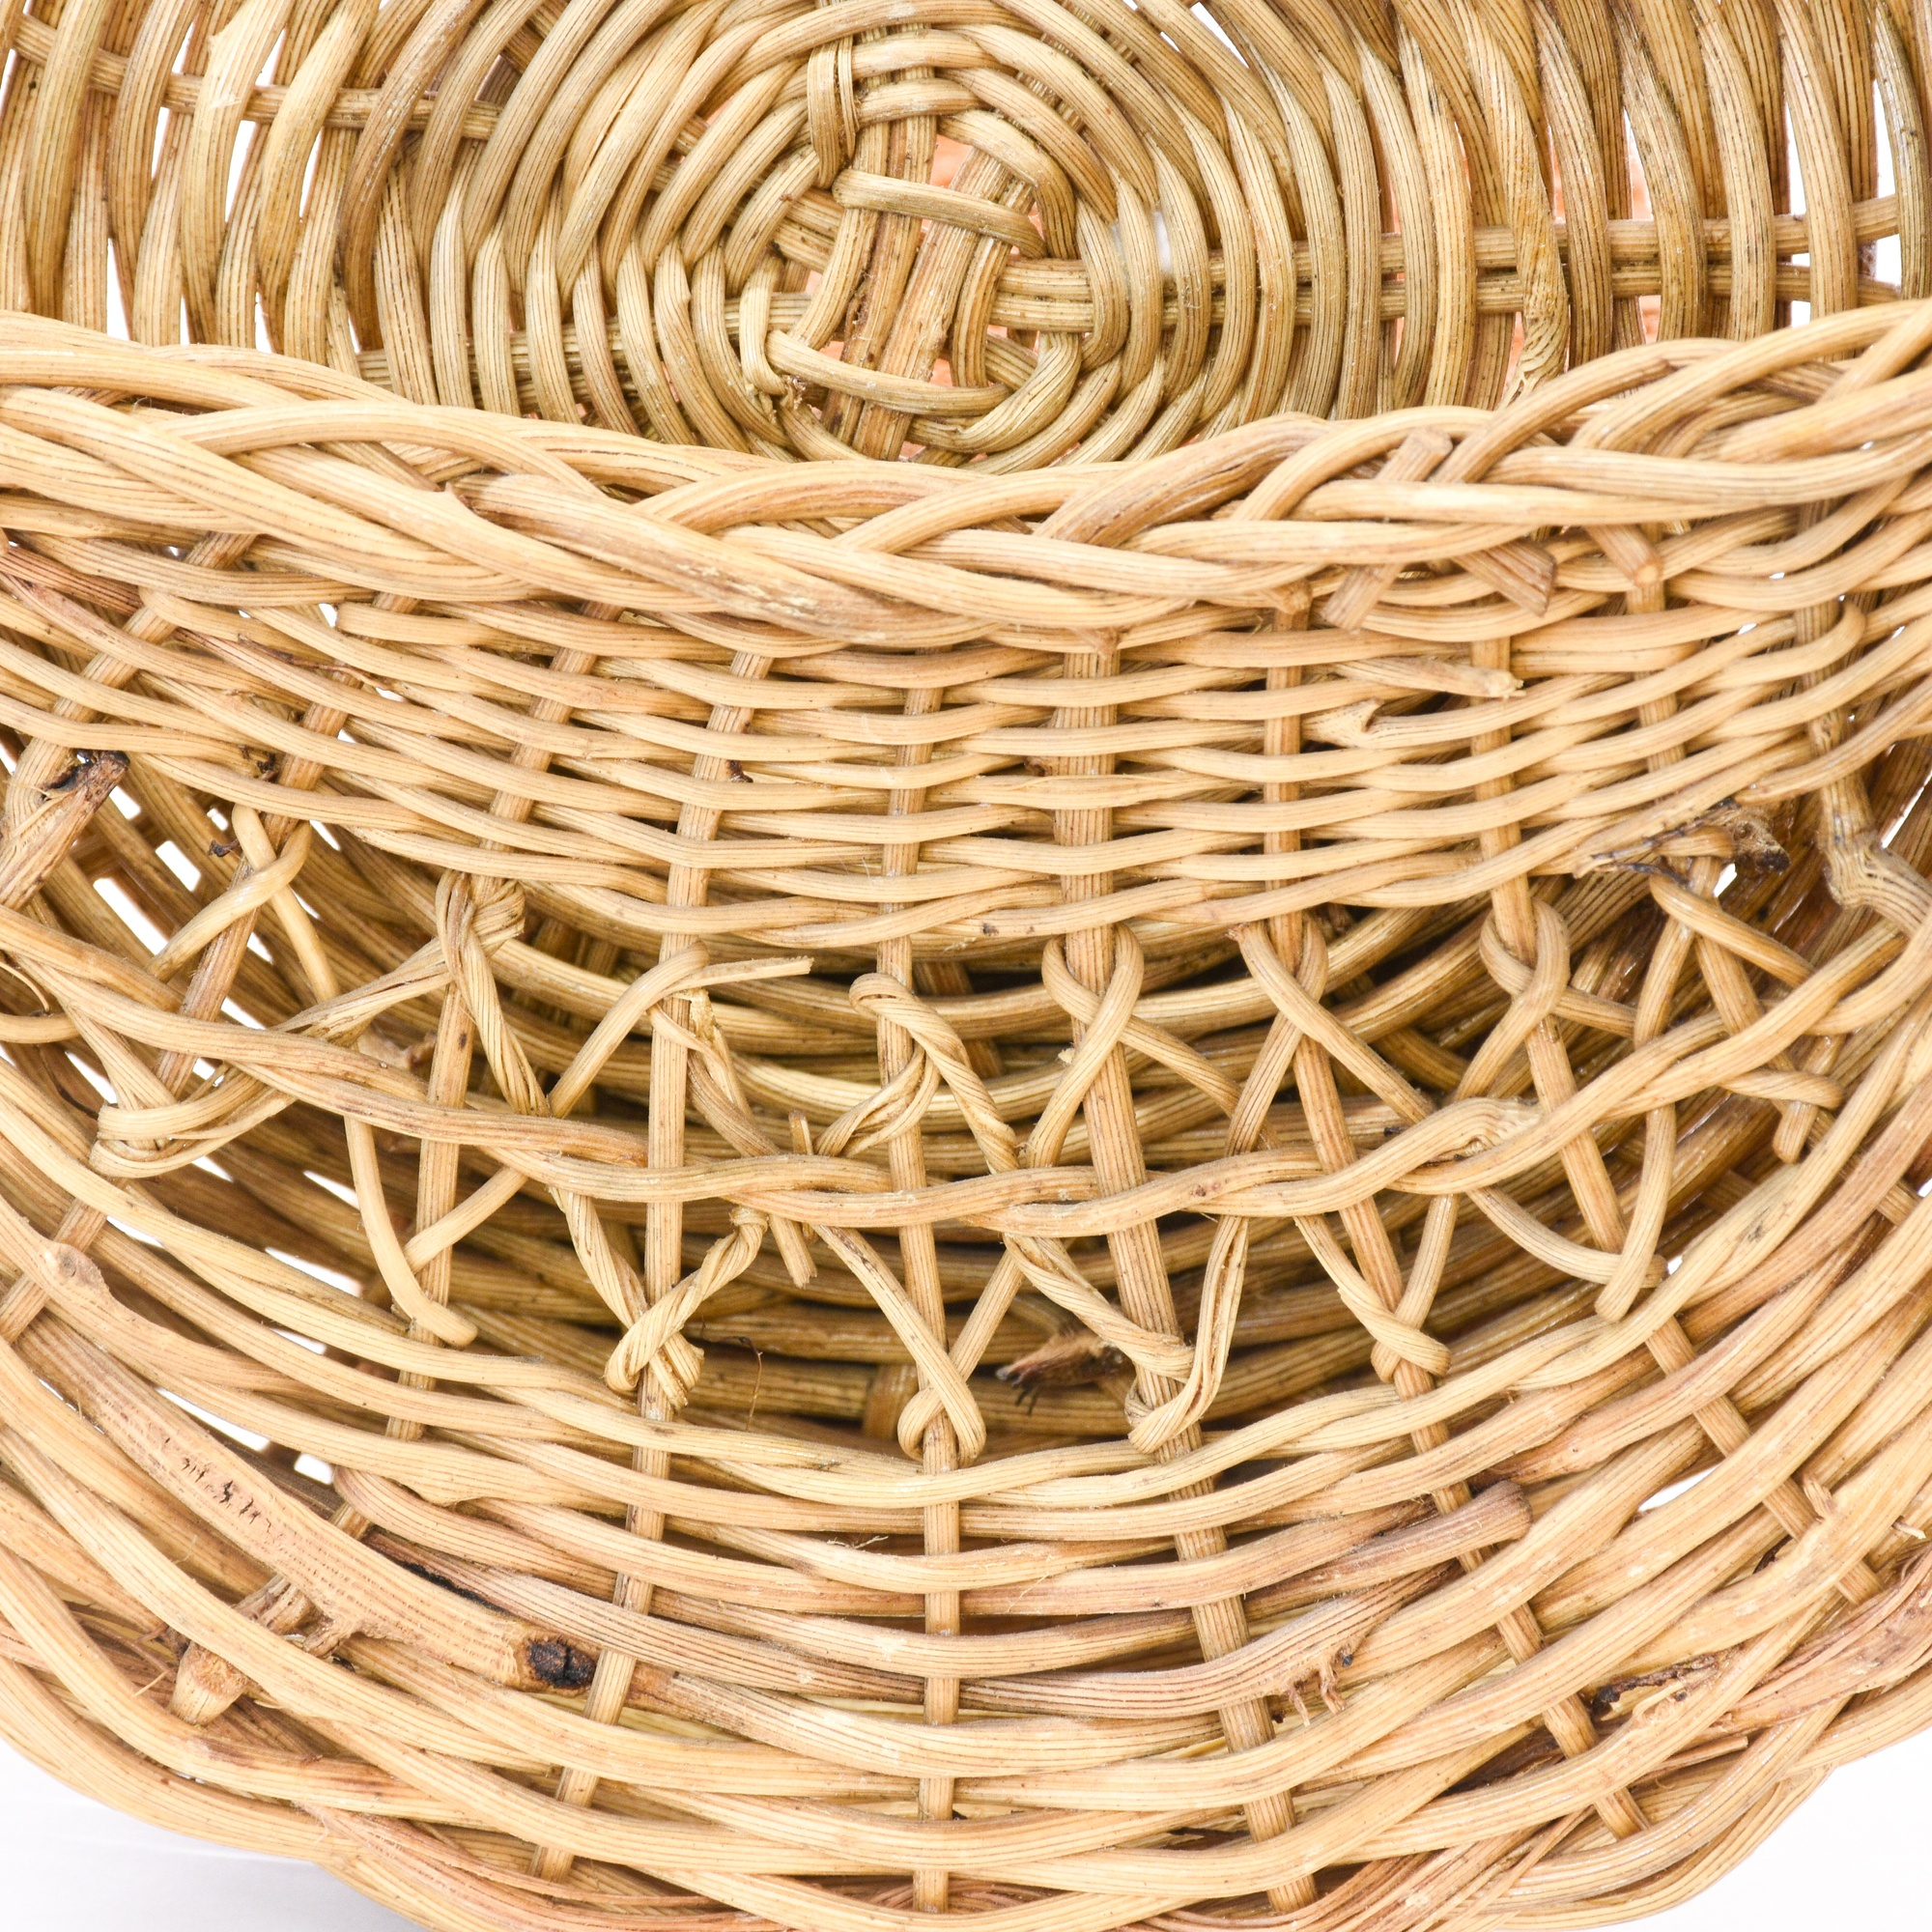 Famous Decorative Baskets For Walls Images - Wall Art Collections ...